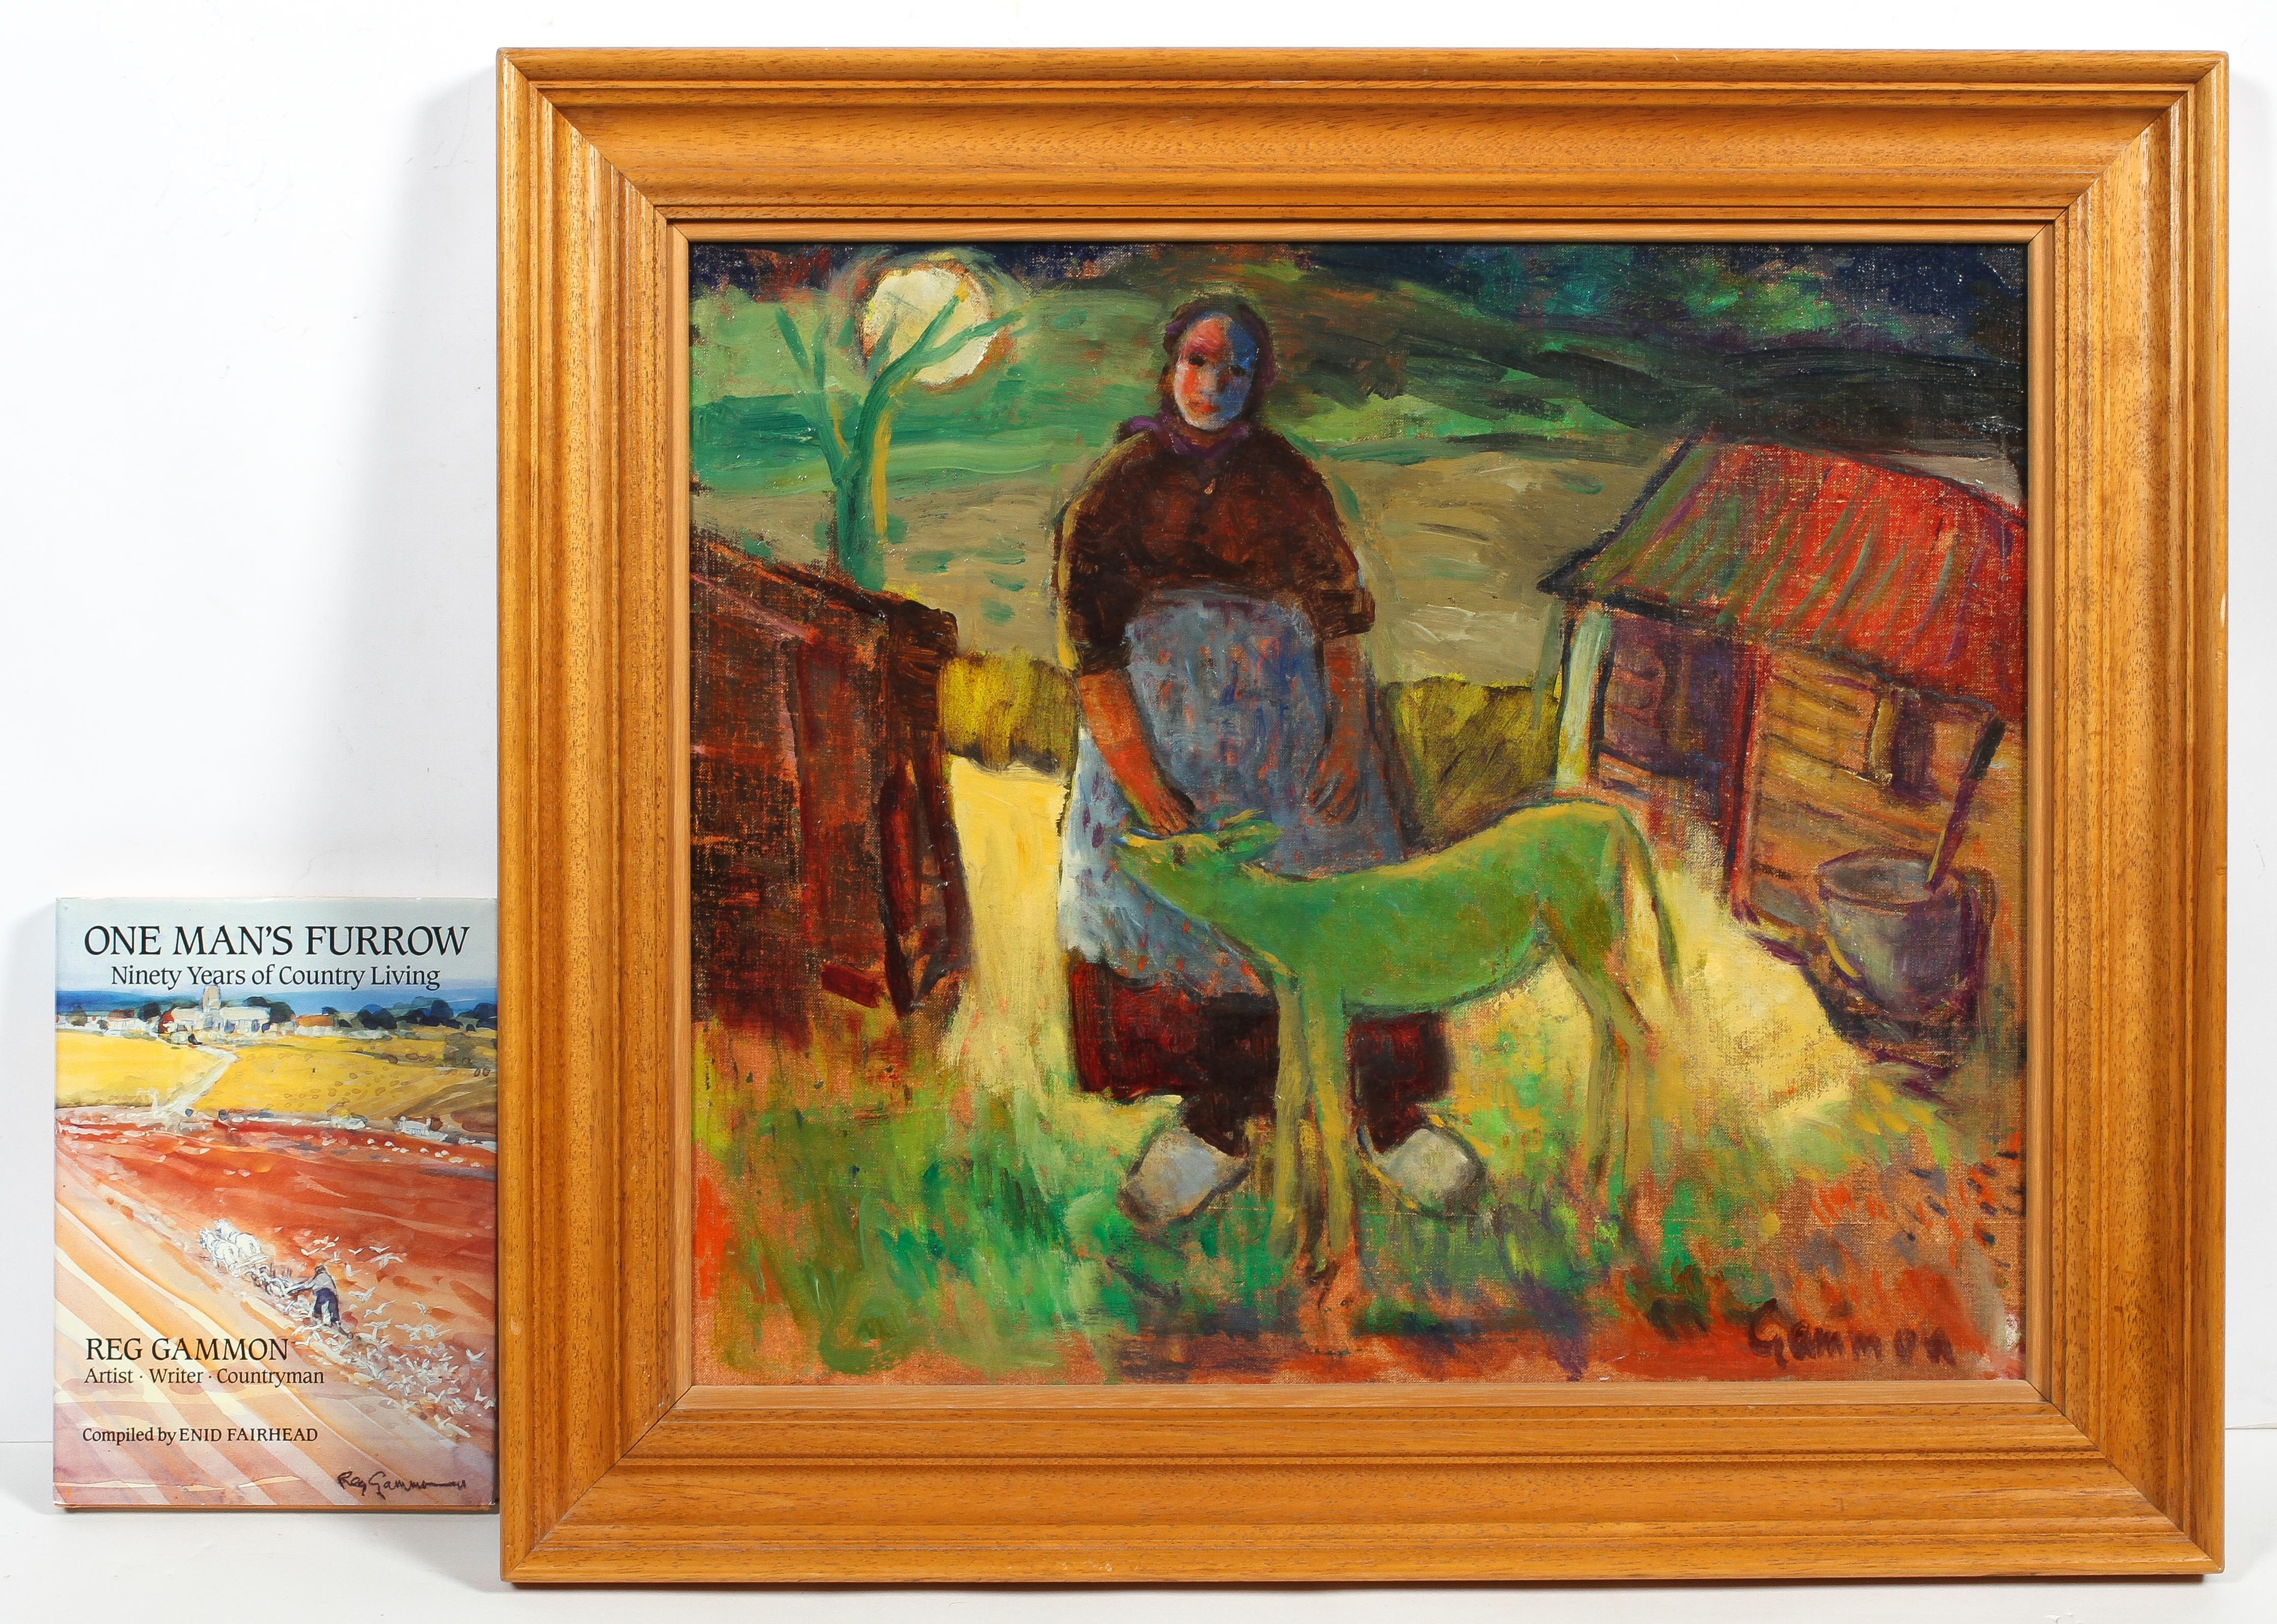 Reg Gammon, Green Calf, oil on board, signed lower right, framed, together with 'One Man's Furrow',